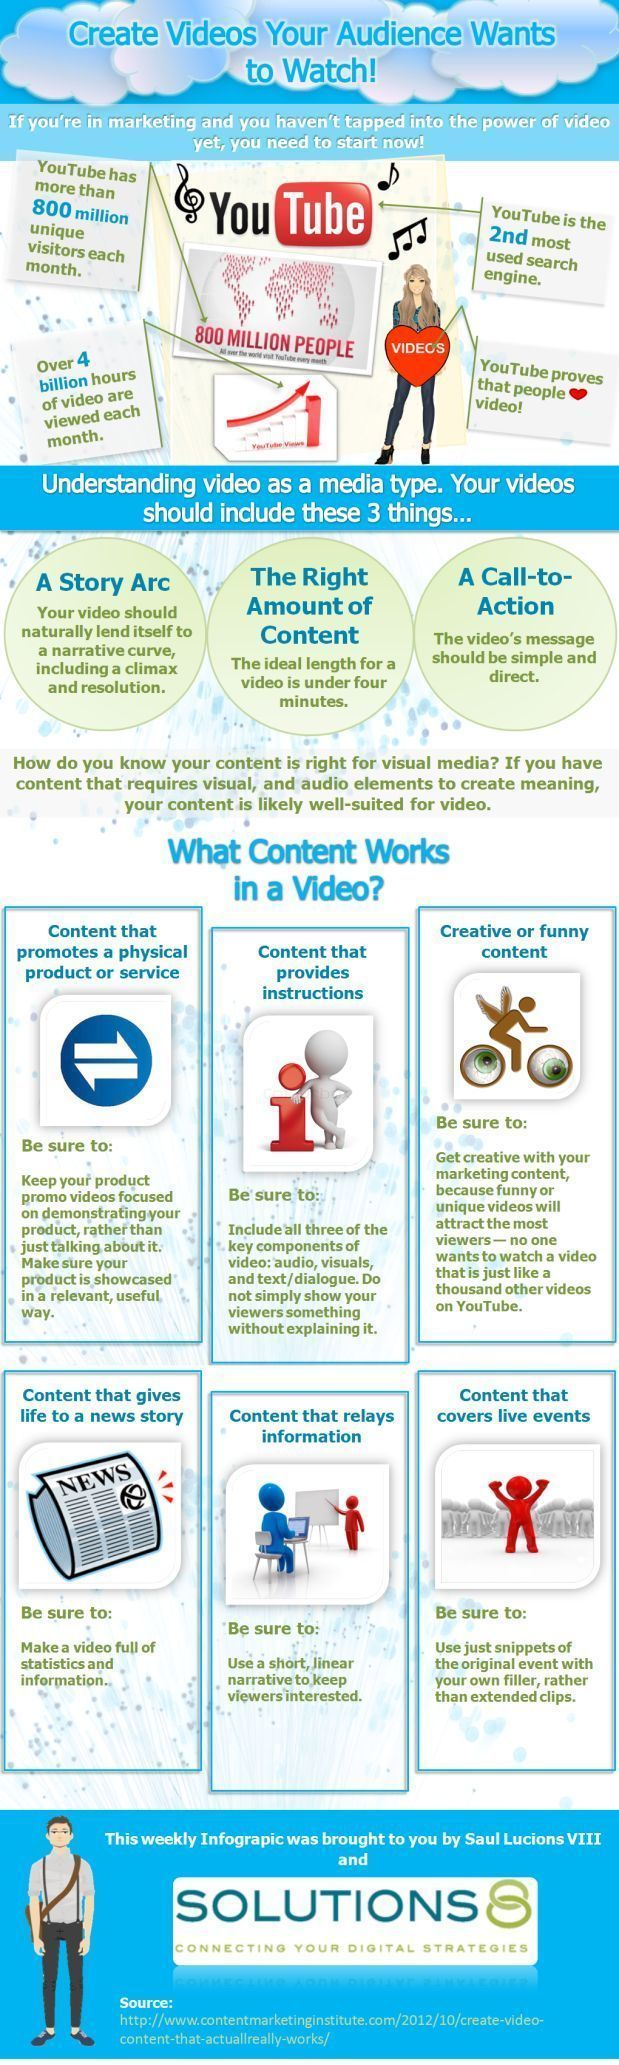 Create videos your audience wants to watch